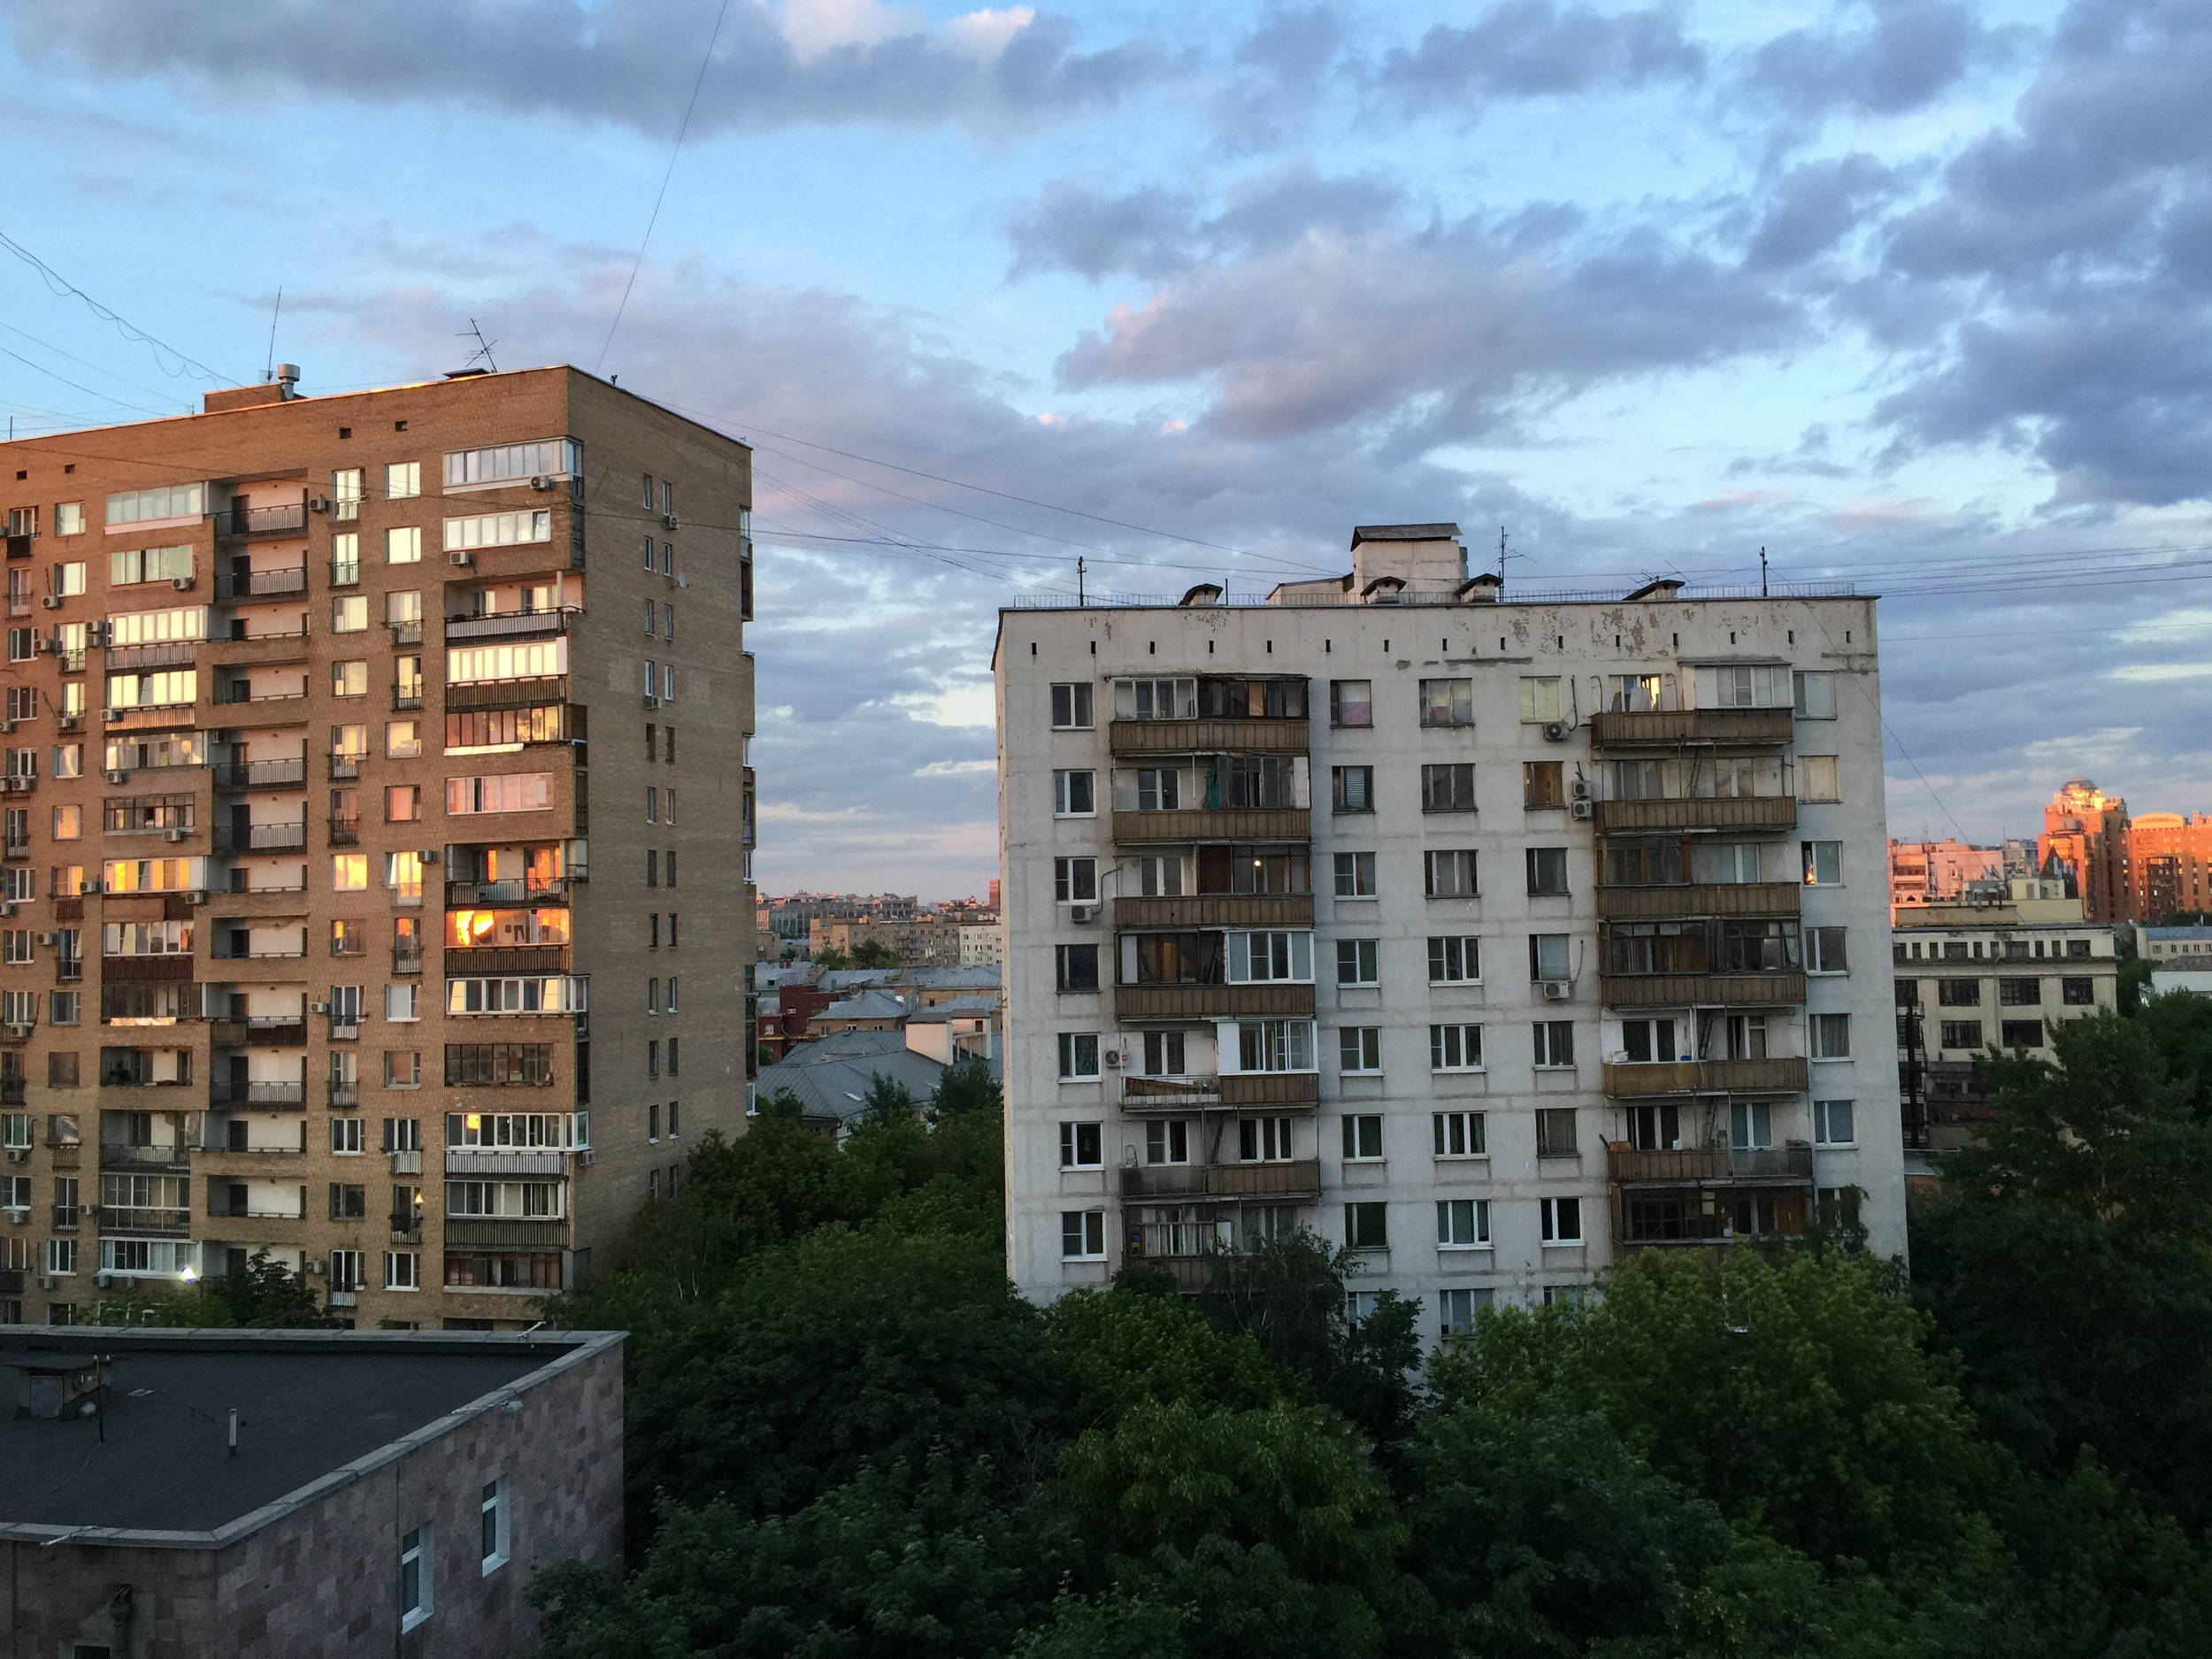 This is my view every night from my Khrushchev-era apartment as I practice my new instrument: the accordina (stay tuned)!